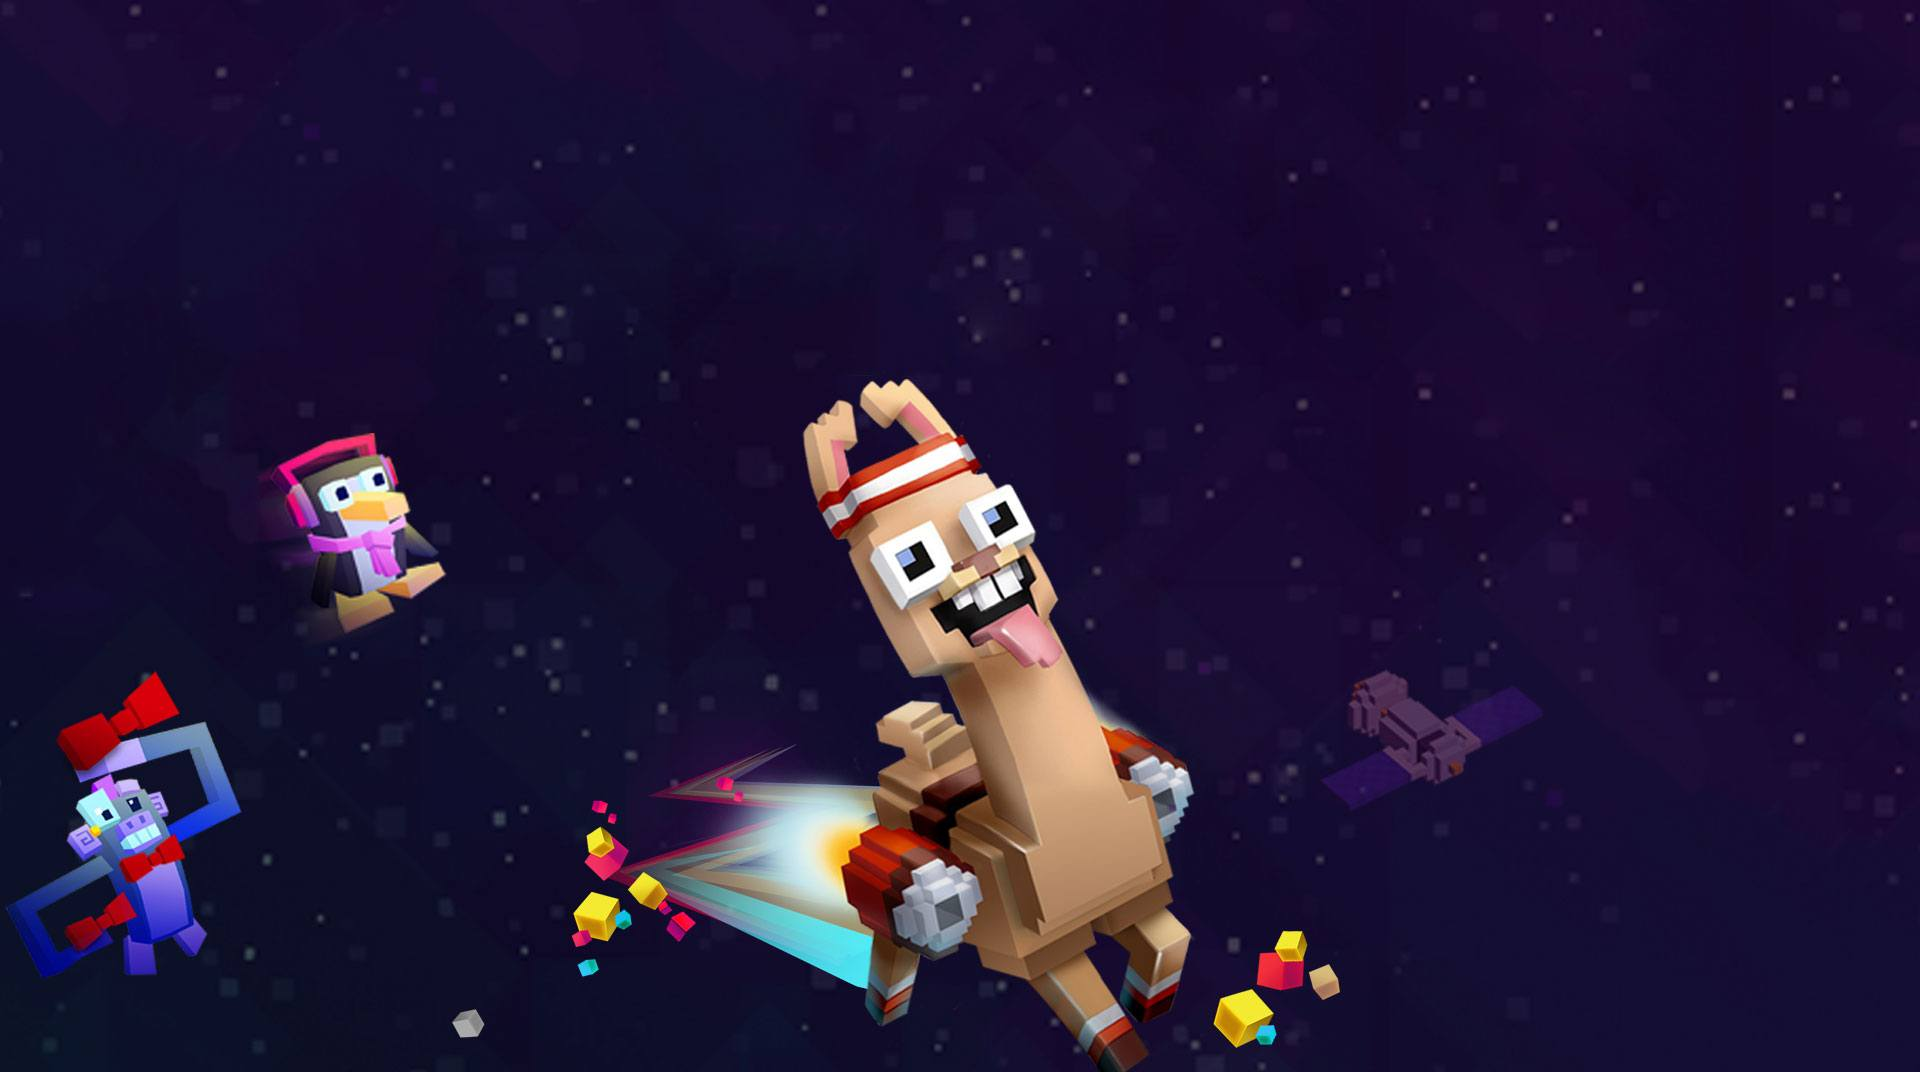 Download Llama Spit Spit on PC with BlueStacks